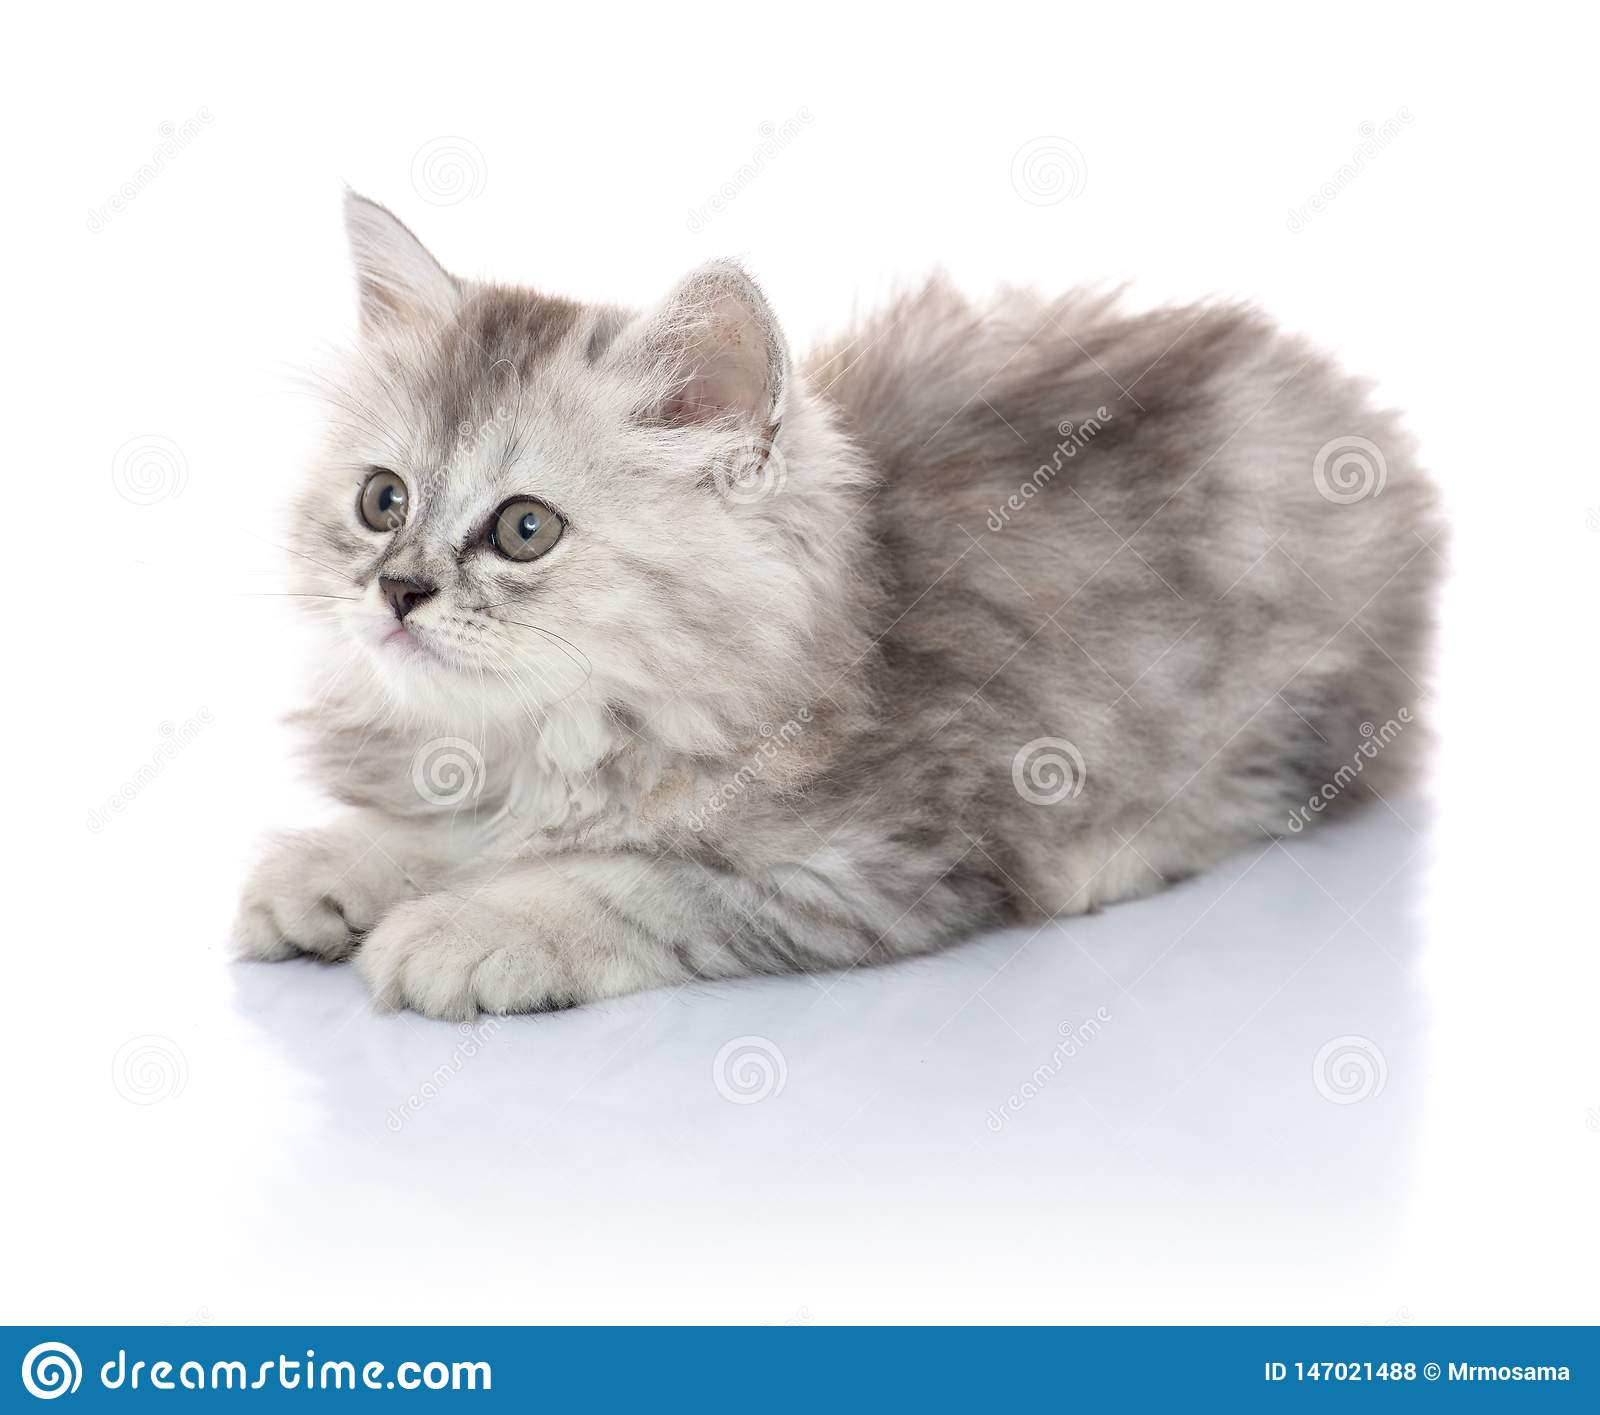 Beautiful Young Furry Kitten Sitting on White Board, Looking Away, Isolated on Blank White Background